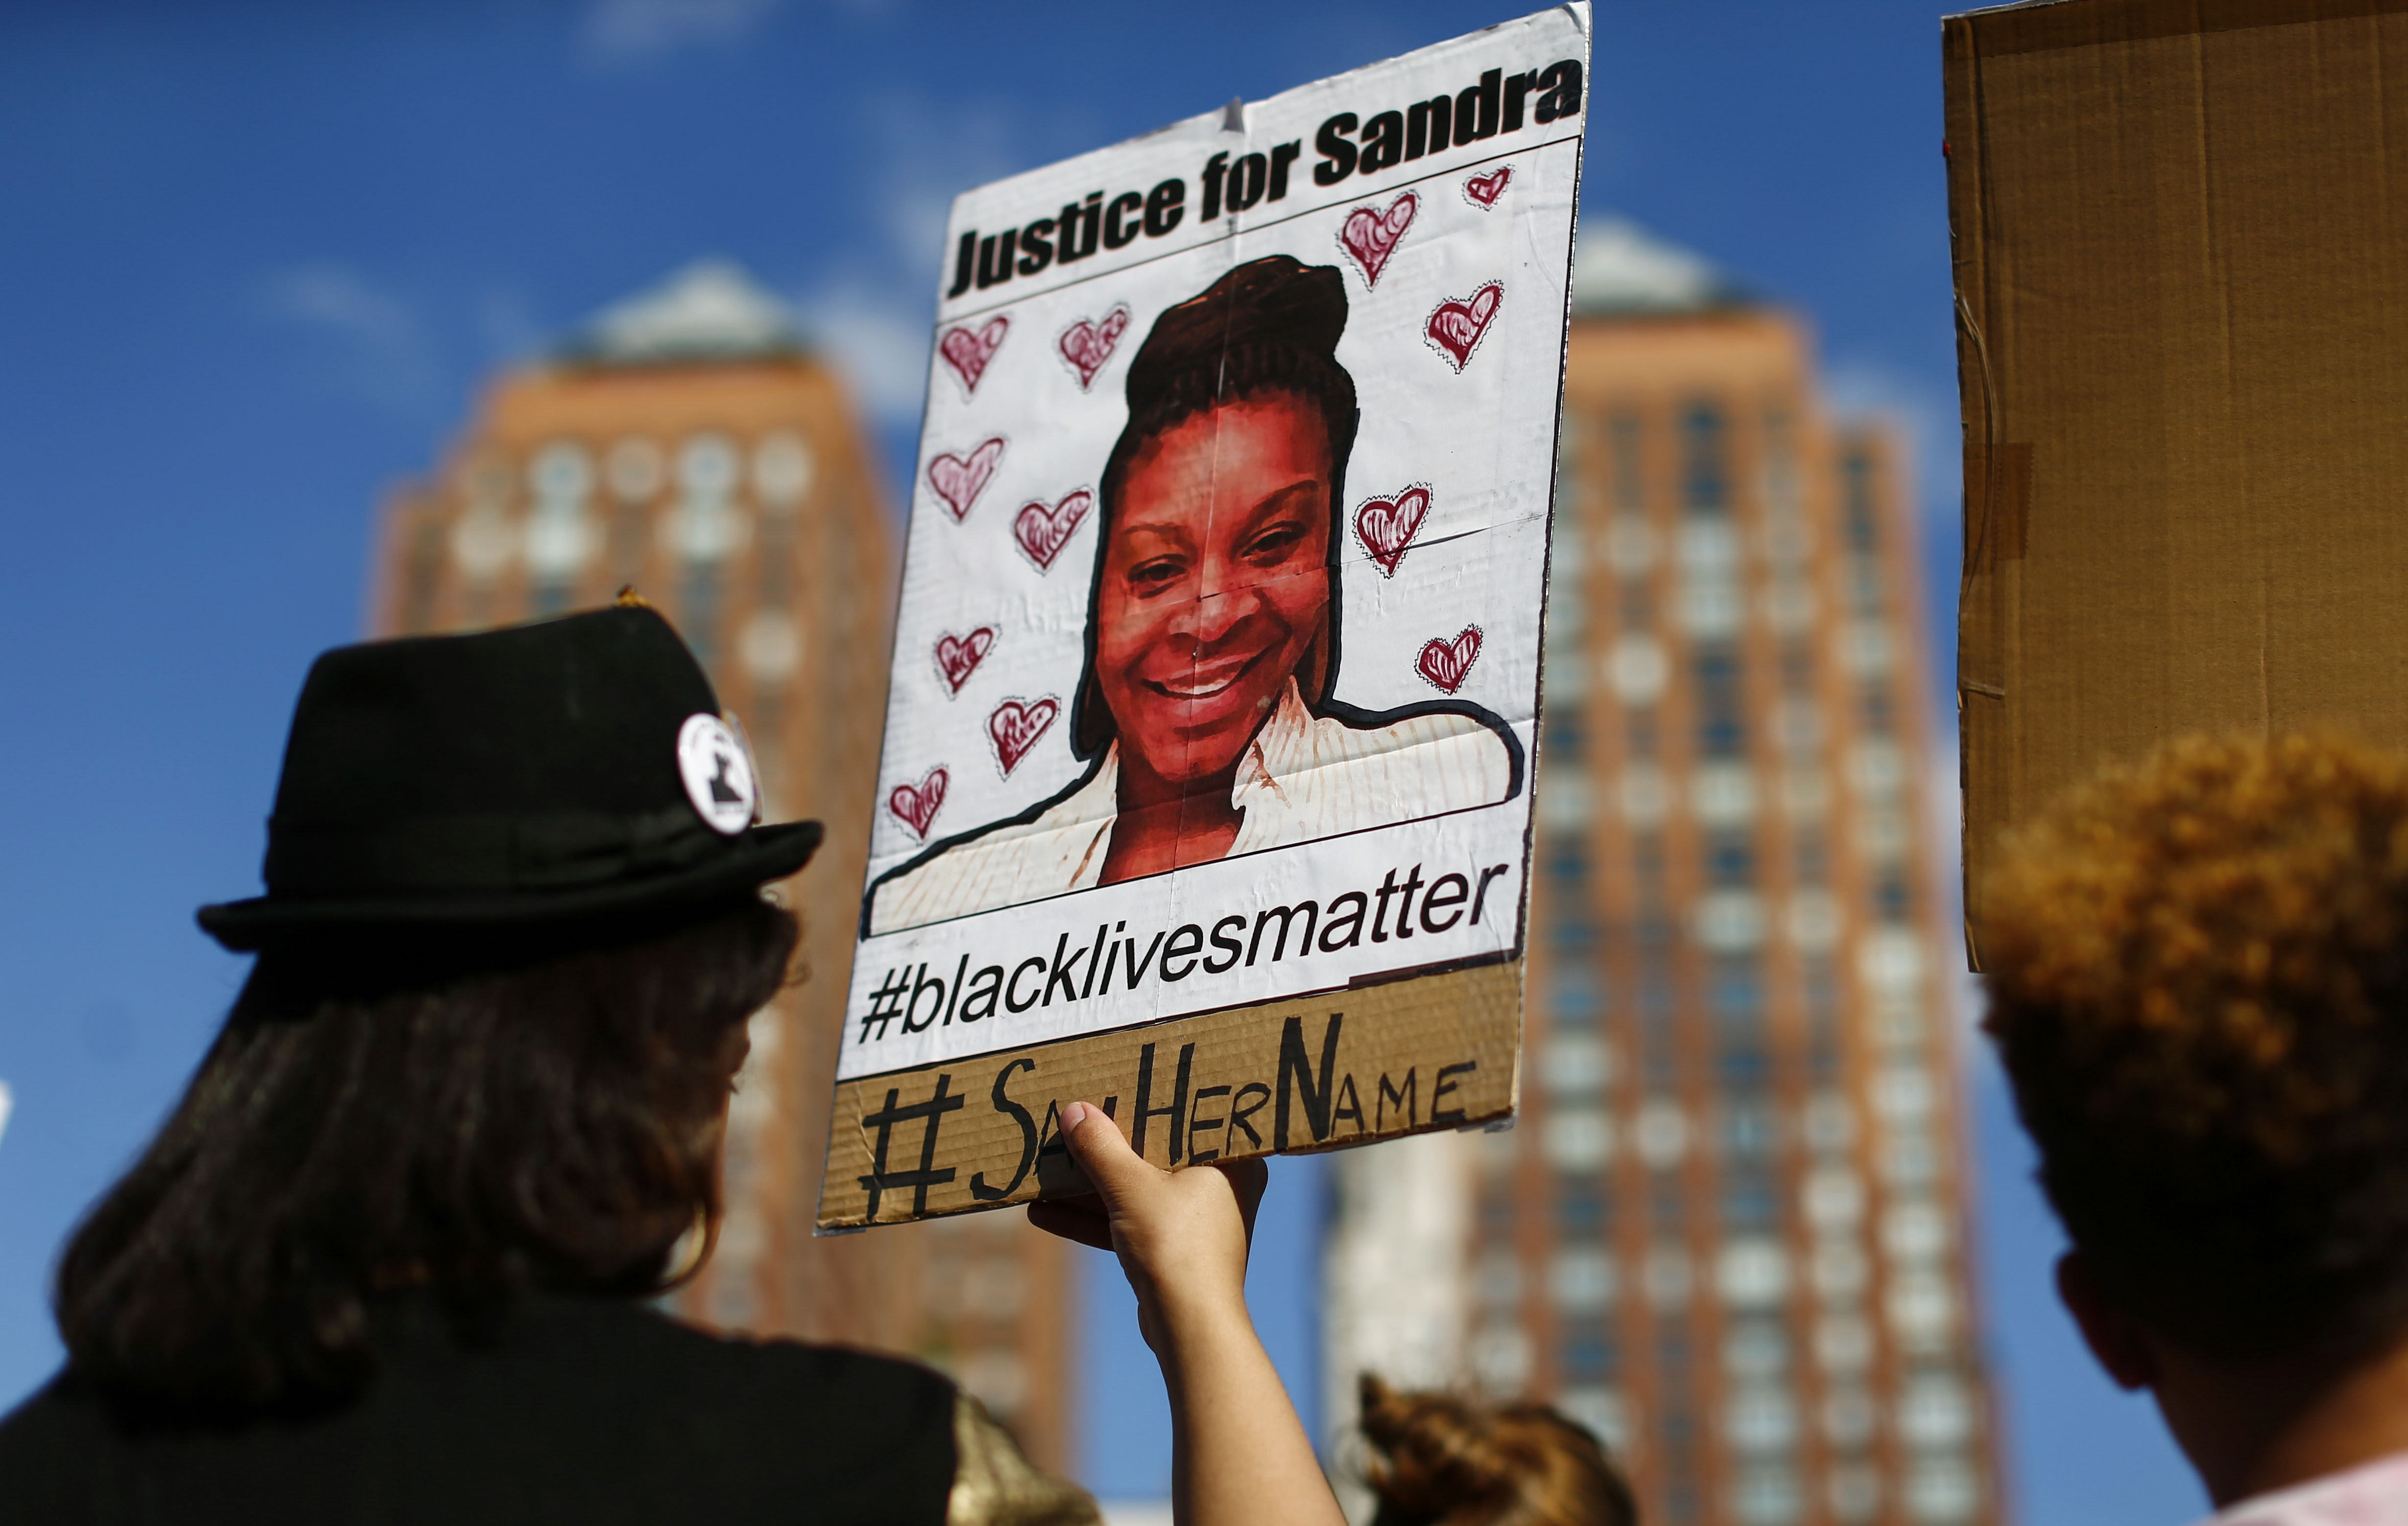 A woman holds a poster bearing the portrait of  Sandra Bland, a 28-year-old black woman who killed herself in a Texas jail cell on July 13th, during a Michael Brown memorial rally in Union Square in New York on Aug. 9, 2015.